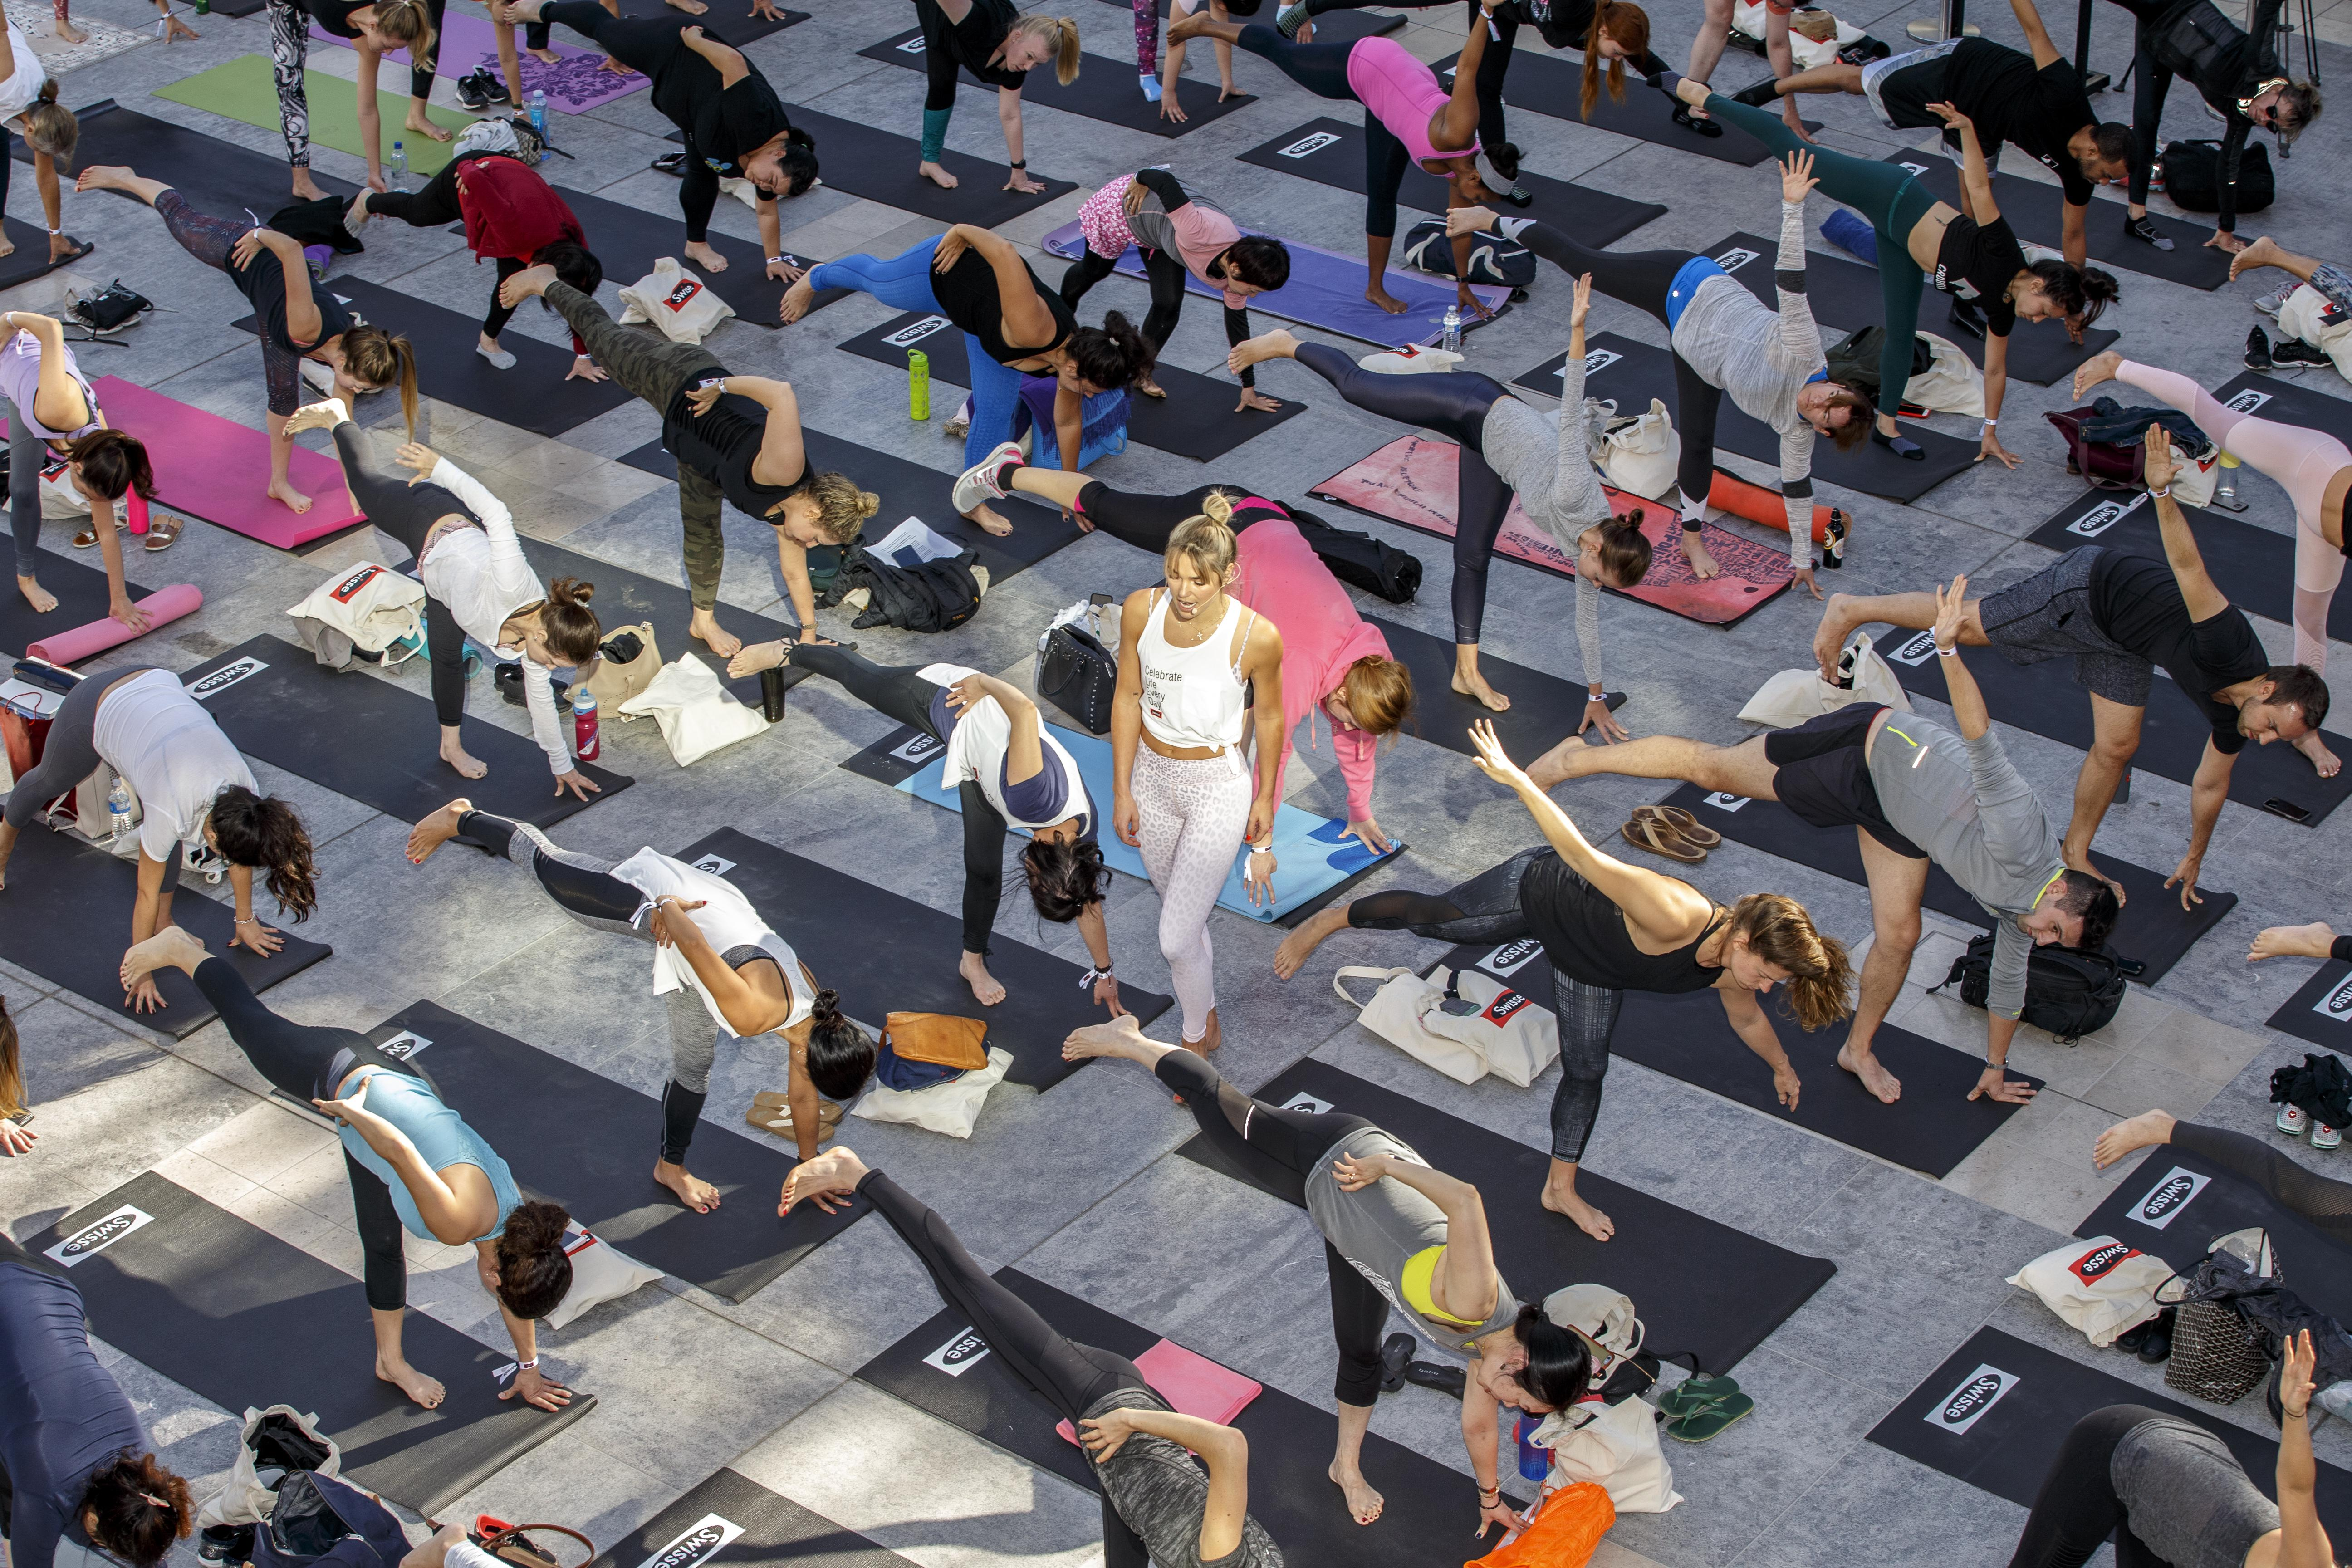 Guests #CelebrateLifeEveryDay at the Swisse Wellness yoga event lead by brand ambassador Ashley Hart (C) at A Mindful Morning with Swisse Wellness & G'Day USA at Westfield Century City on January 14, 2018 in Century City, California.